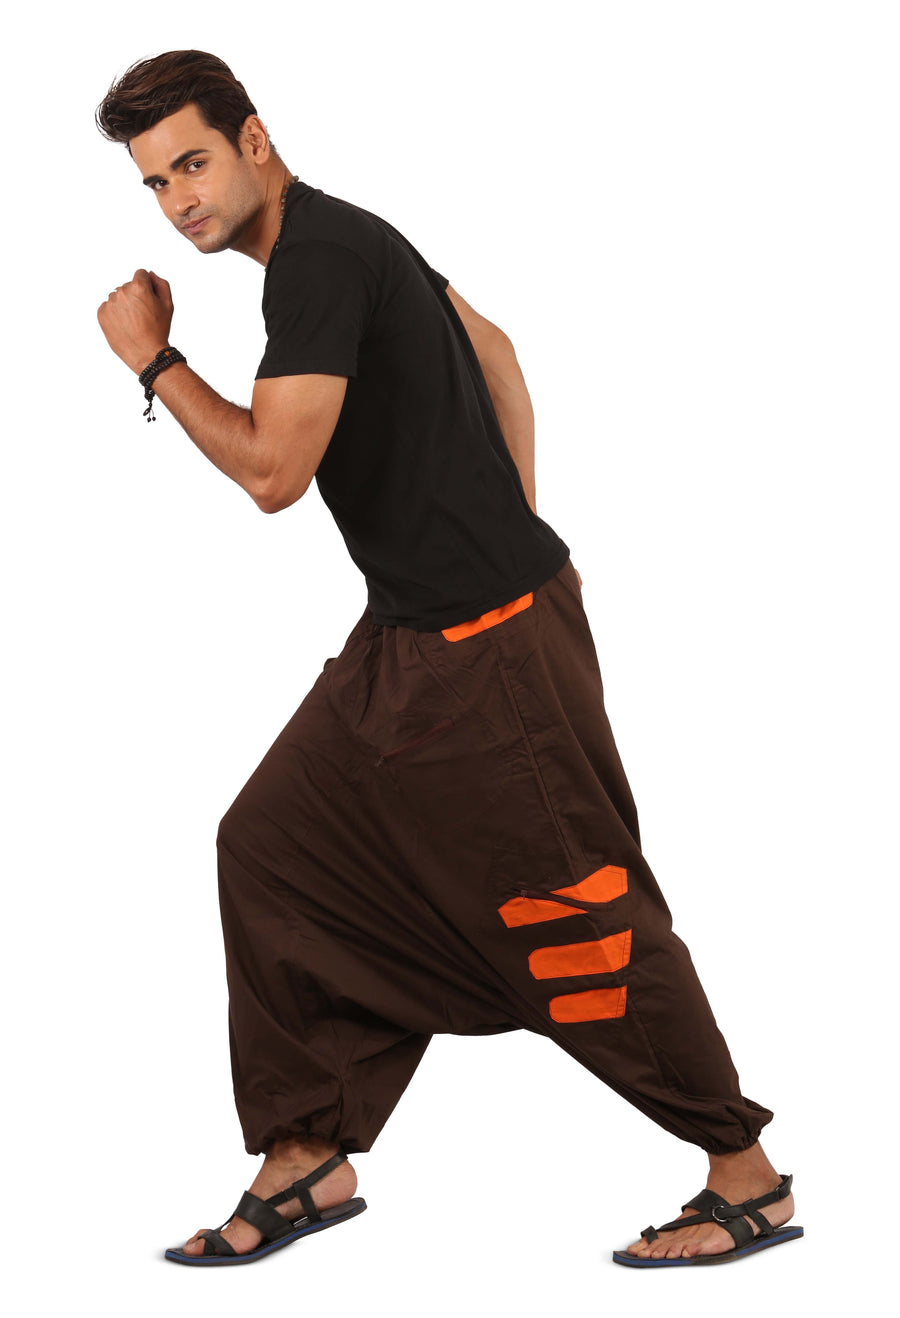 Harem Pants, Brown Harem Pants, Men Harem Pants, Mens Harem Pants, Boho Pants, Genie Pants, Hippie Pants, Wide Leg Pants, Show me Hippie Pants, Show me some Mens Harem Pants, Show me some Womens Harem Pants, What is a harem pant, Show me some baggy pants, I want to buy harem pants, cool harem pants, Wide leg harem Pants, Cheap Harem Pants, Show me best harem pants, Highly rated Harem Pants, Sarouel, Haremshose, Afgani Pants, One Size Fits All Pants,Show me  XXXL Pants